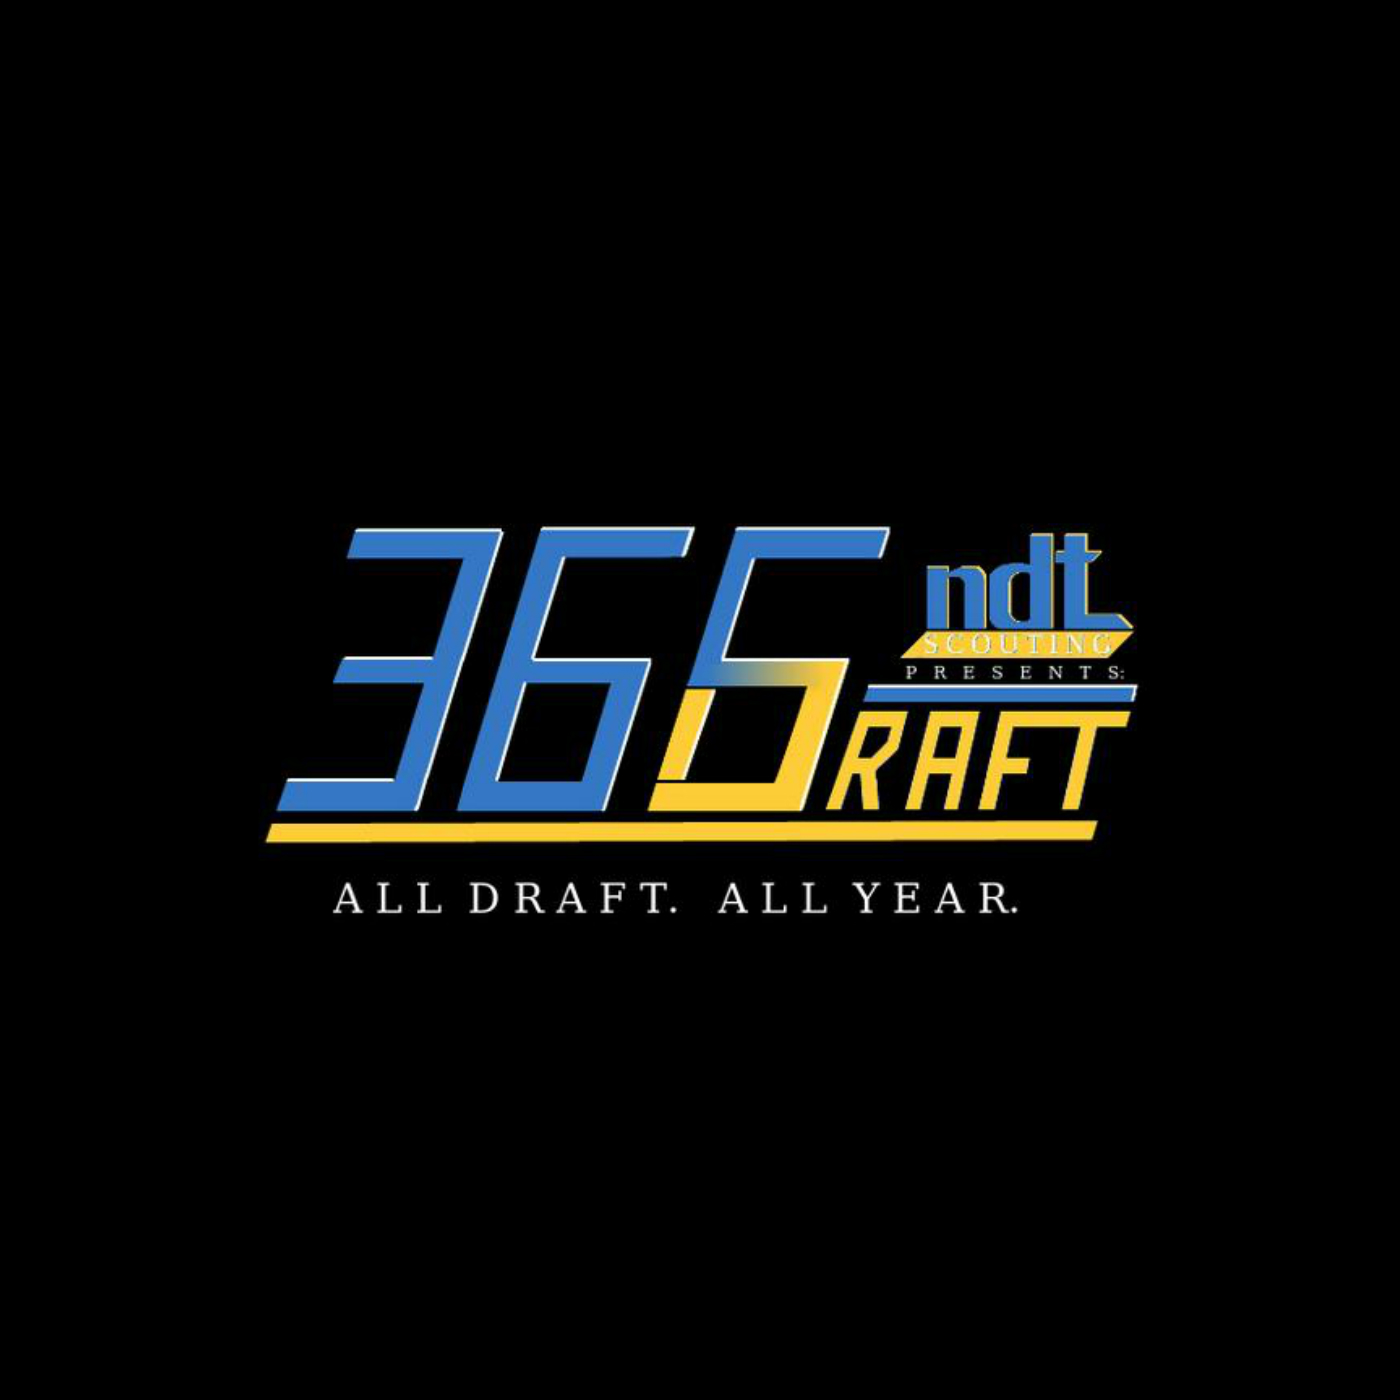 NDT Scouting's 365 Draft Weekly Podcast